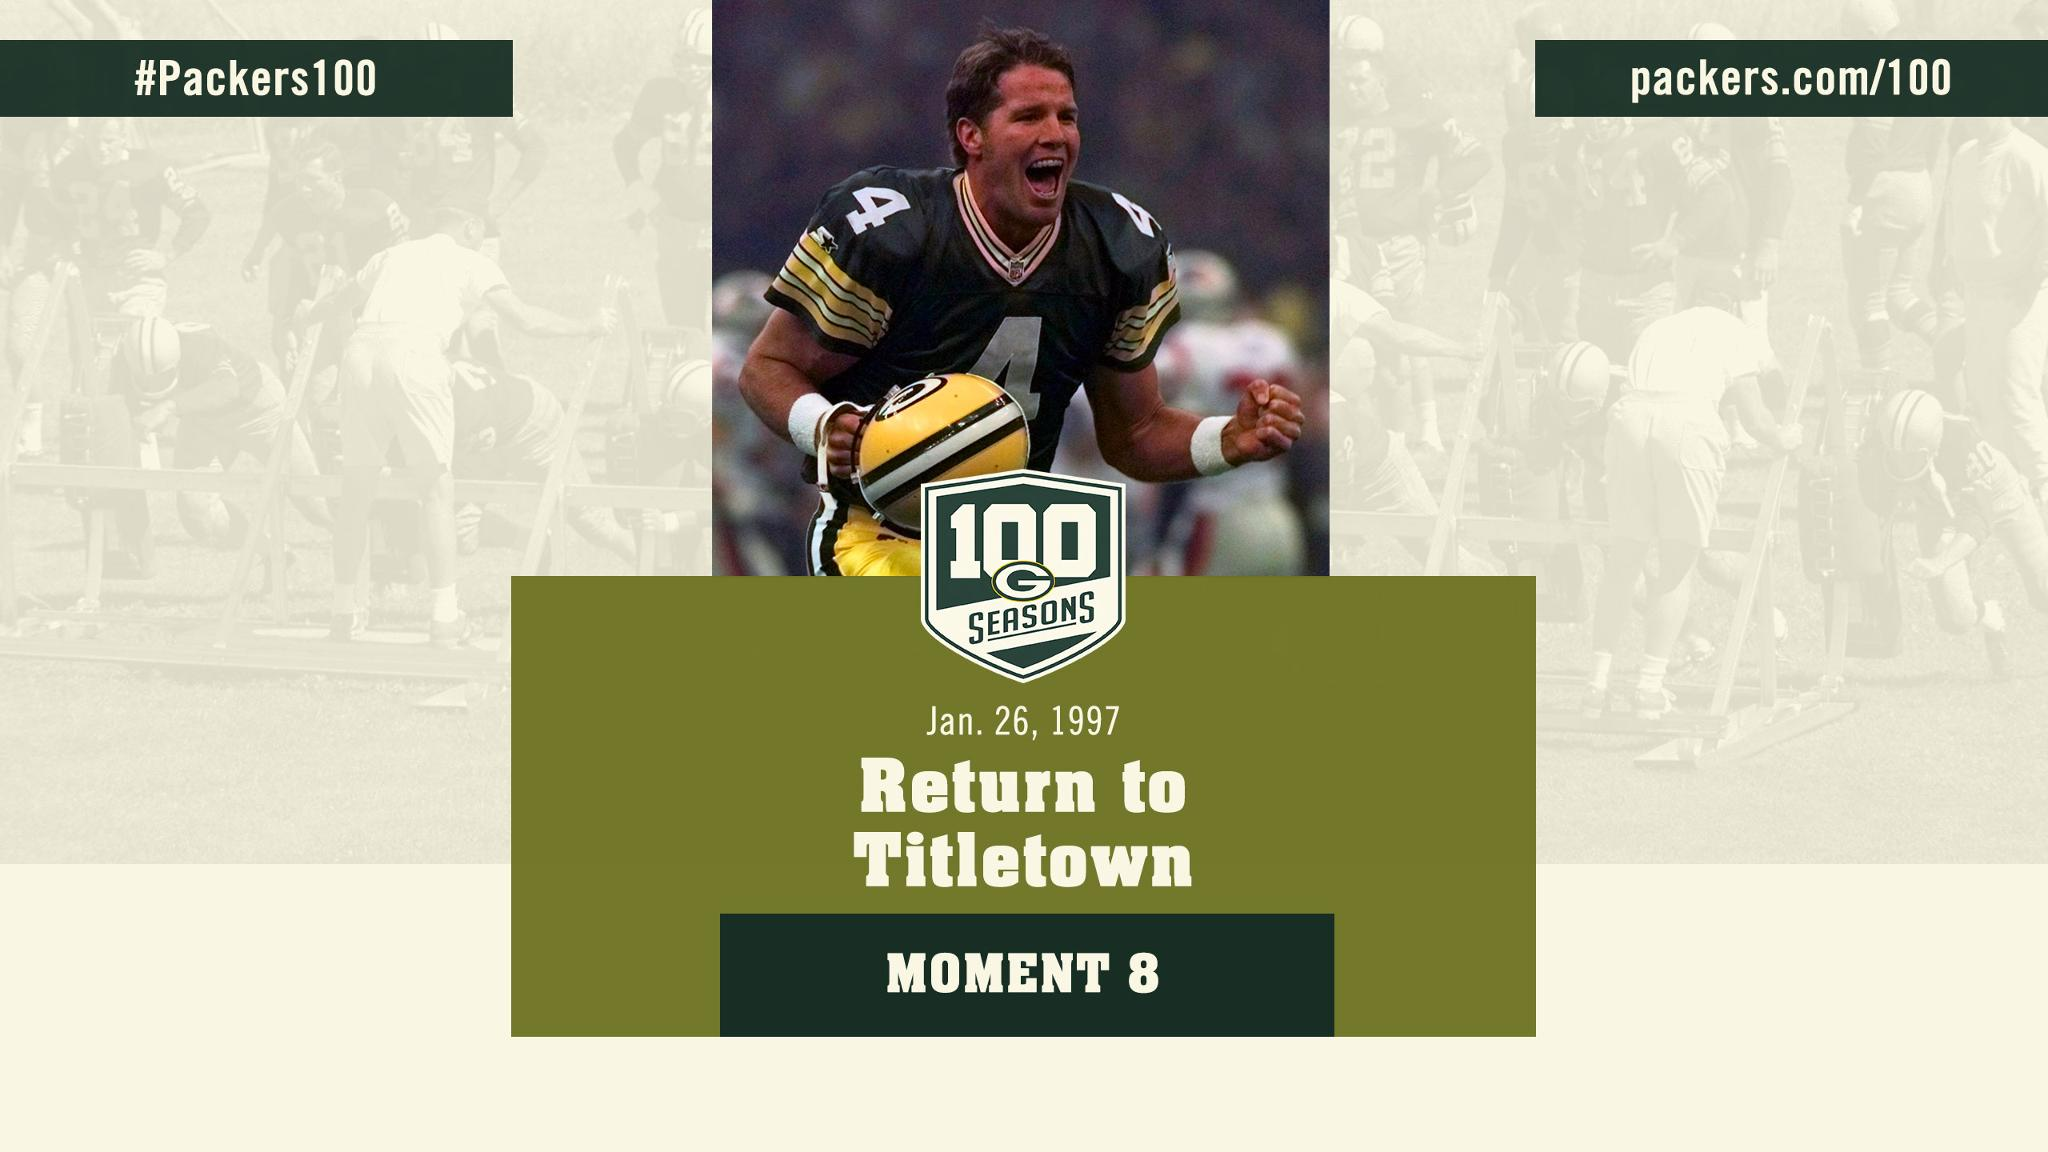 January 26, 1997: Super Bowl XXXI champs ��  ��: https://t.co/KTAYtNg2WP   #Packers100 https://t.co/Zqyvu2U7Qf